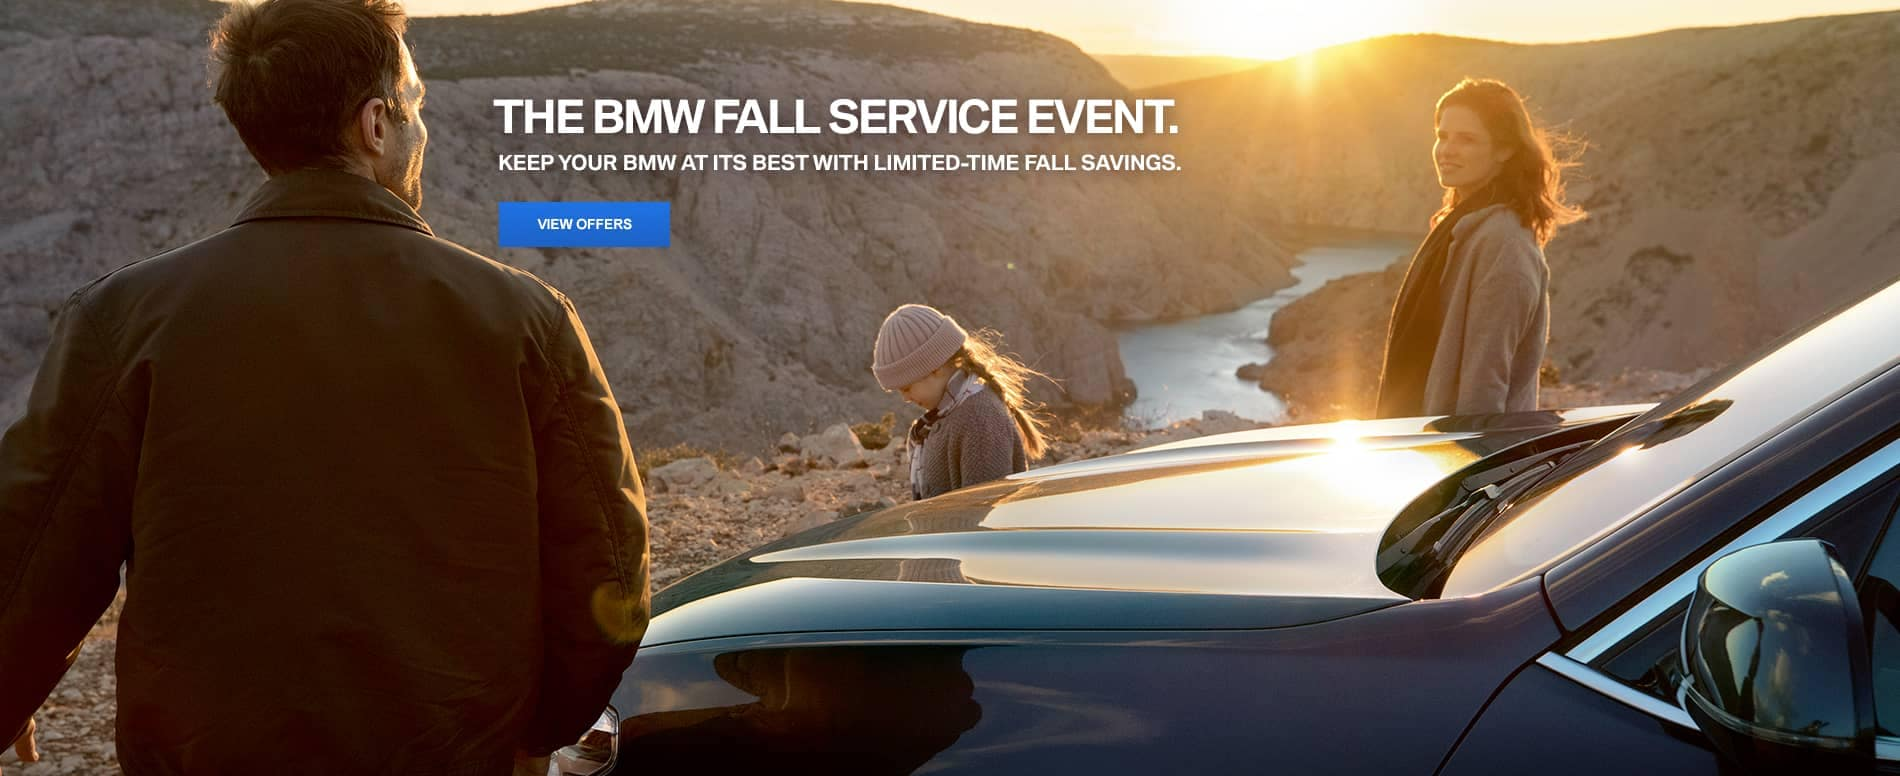 BMW Of Beaumont TX New Used BMW Dealership Near Me - Car show beaumont tx